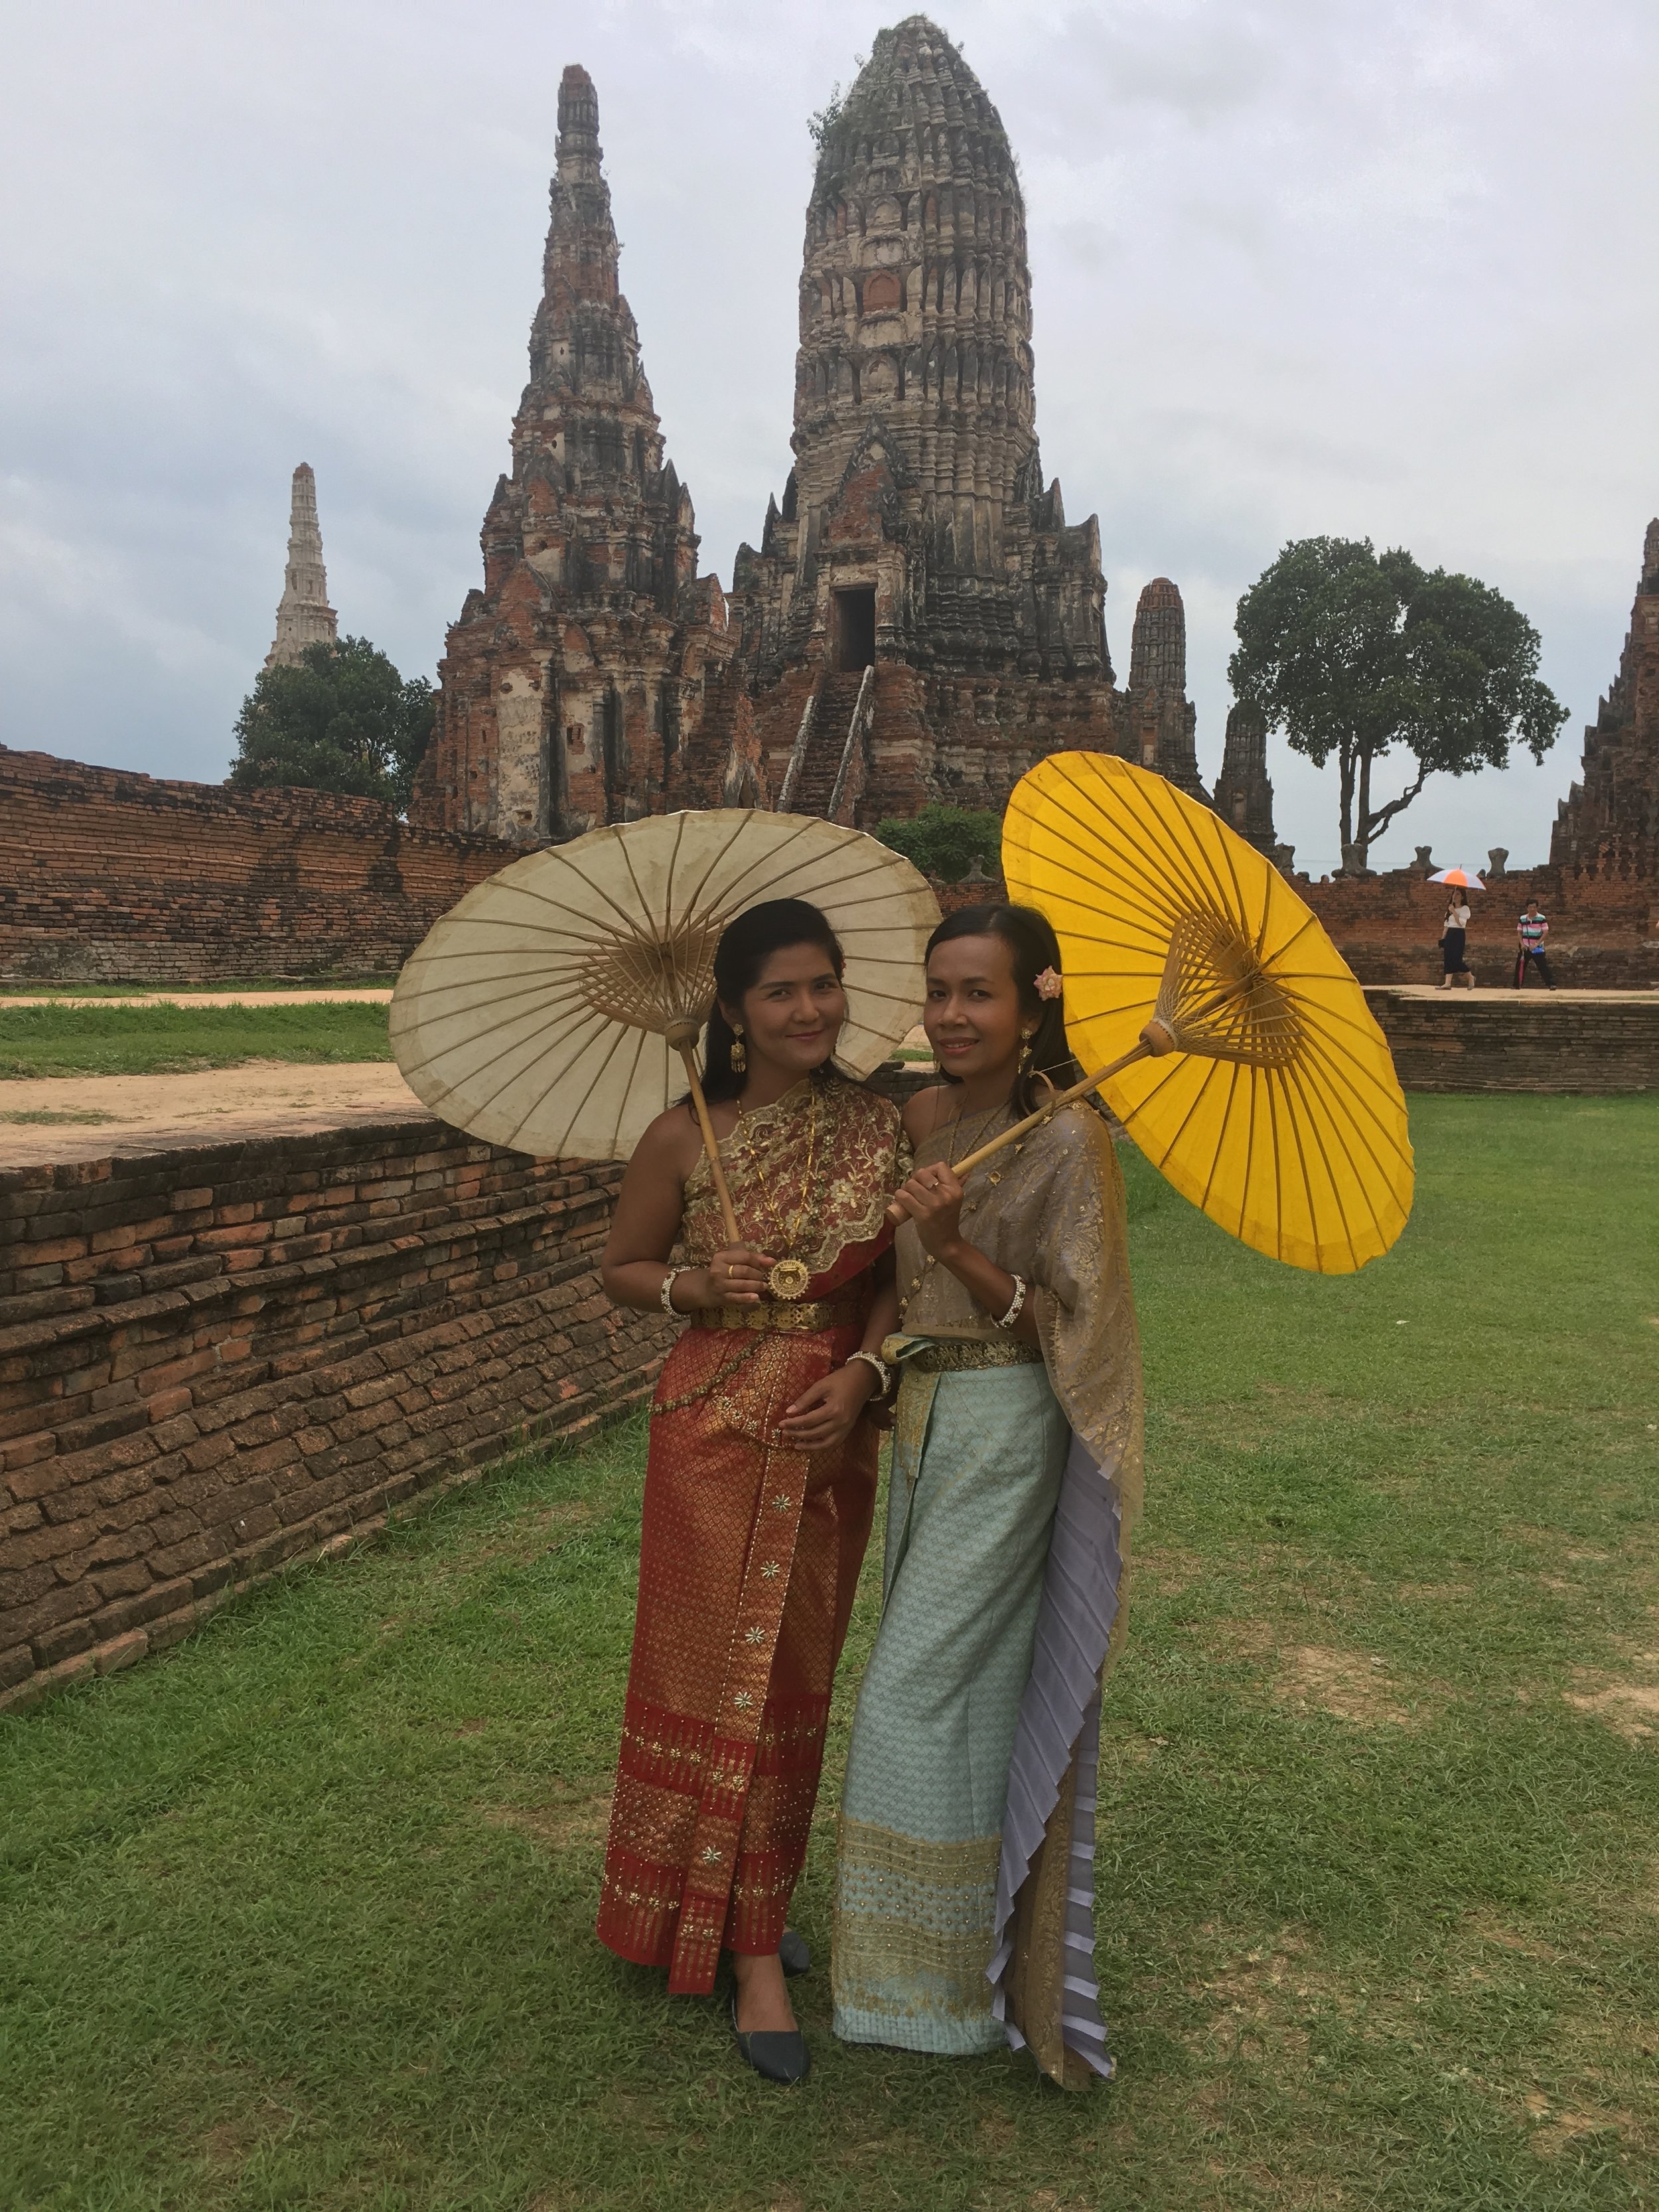 In Ayutthaya, you can rent period costumes and really look the part for some memorable pictures to show your friends at home!